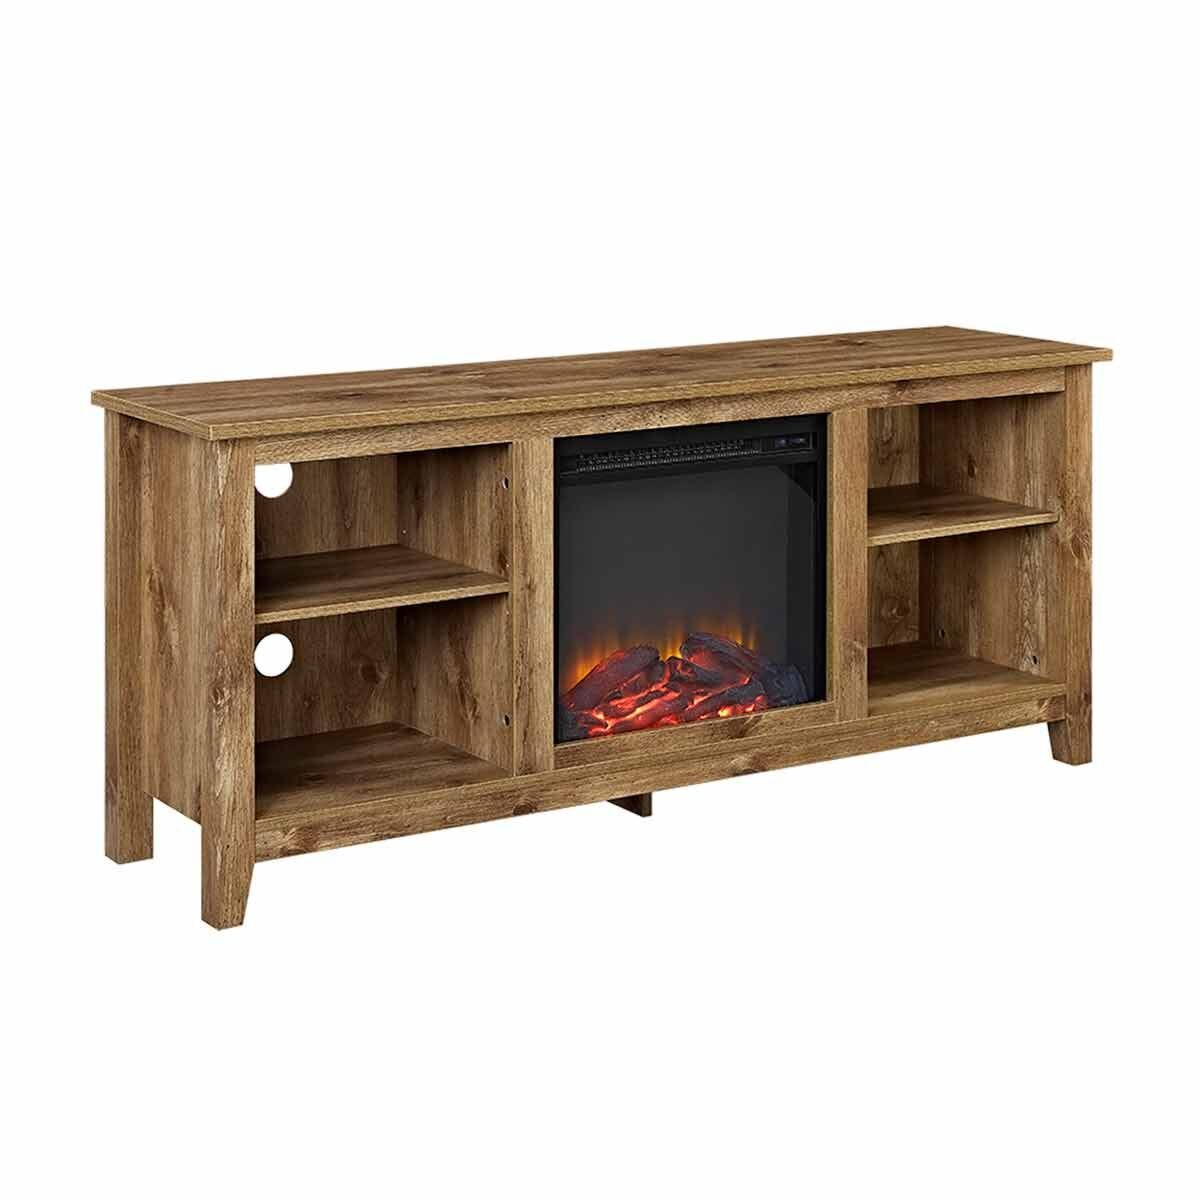 Ourense Rustic Farmhouse Tv Stand With Fireplace Wood